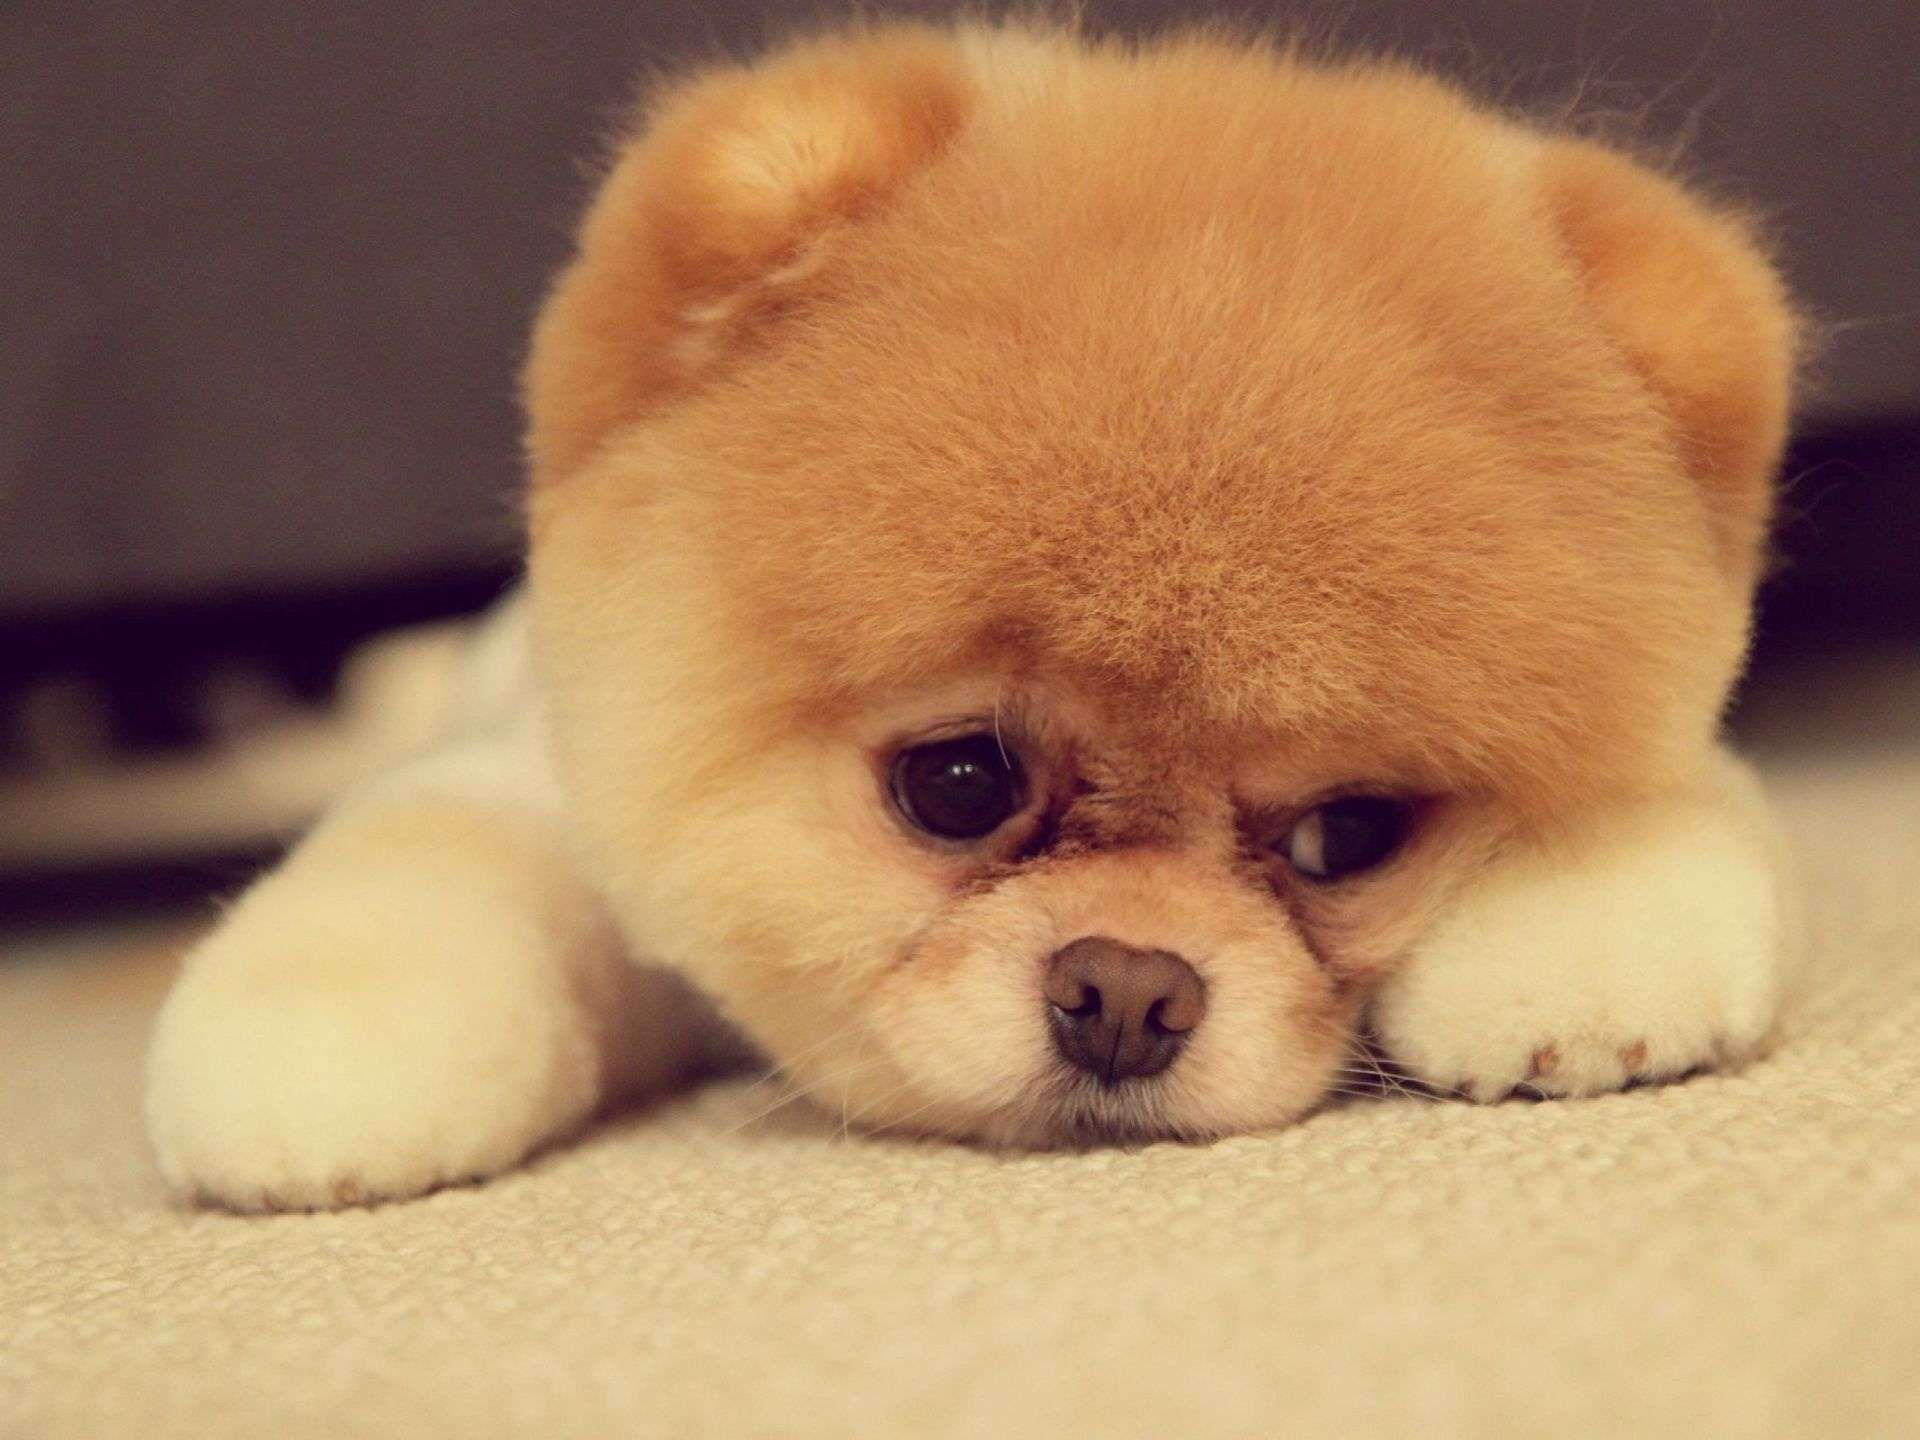 puppy sad puppy face wallpaper hd widescreen high quality pc